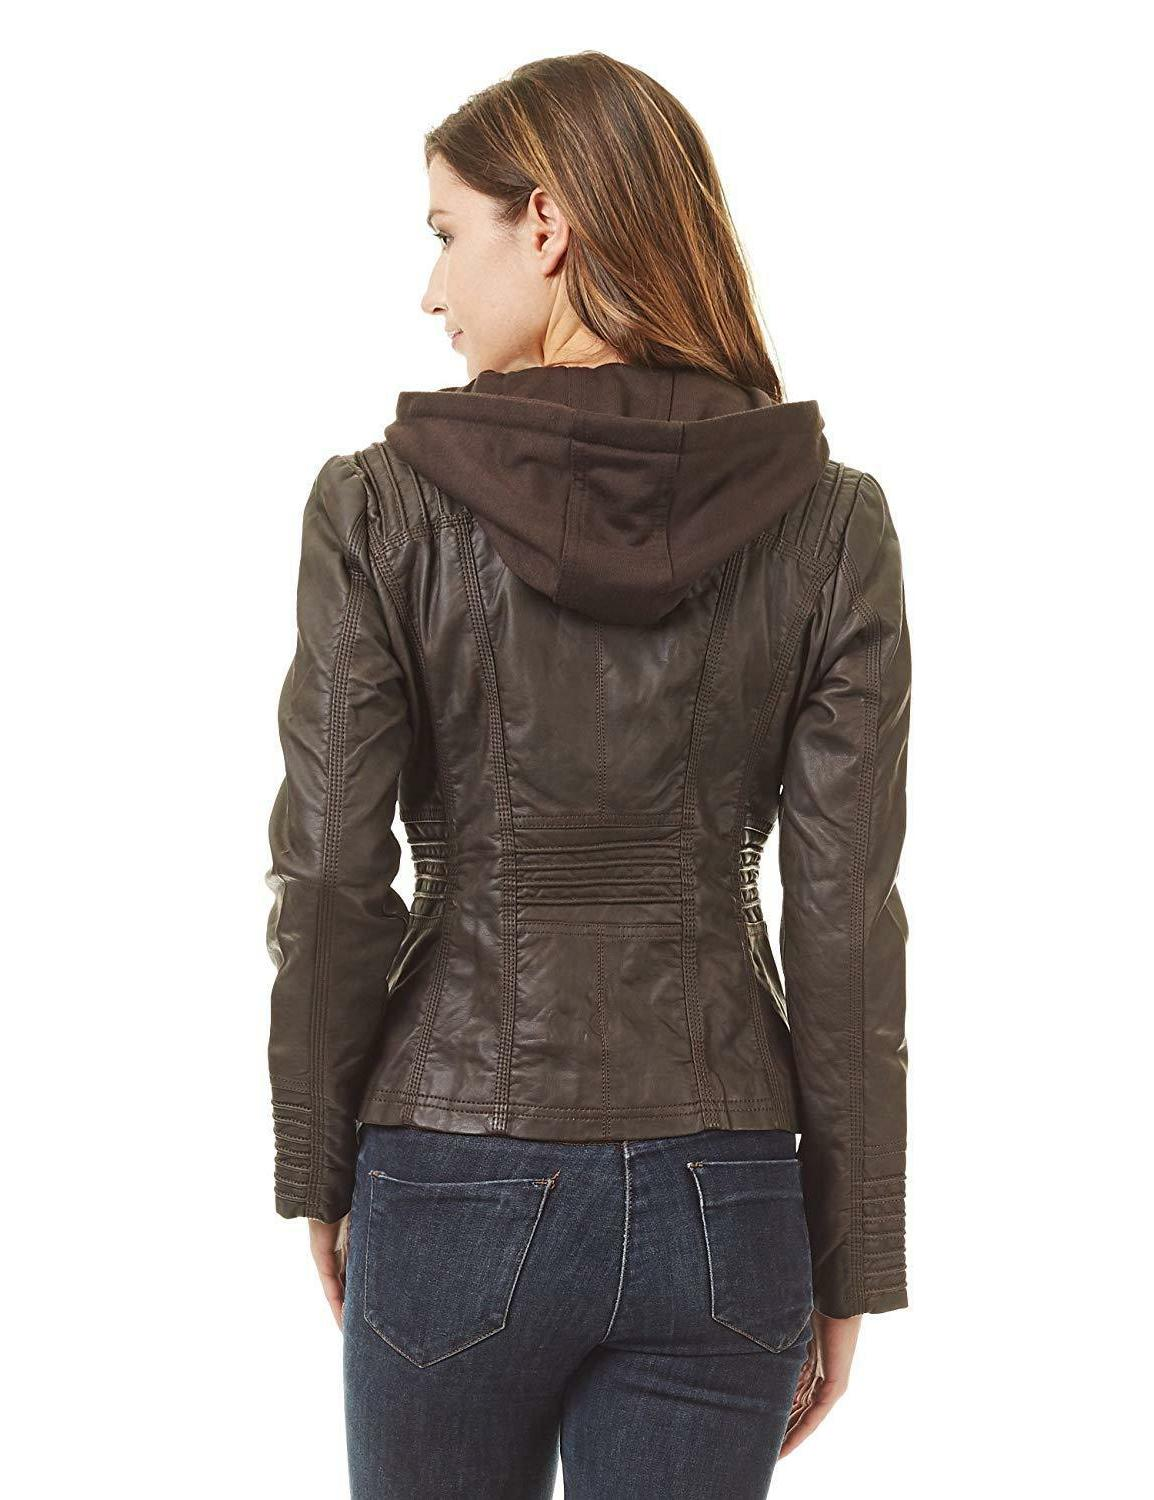 Come California Womens Faux Leather Up Moto Jacket with Hoodie